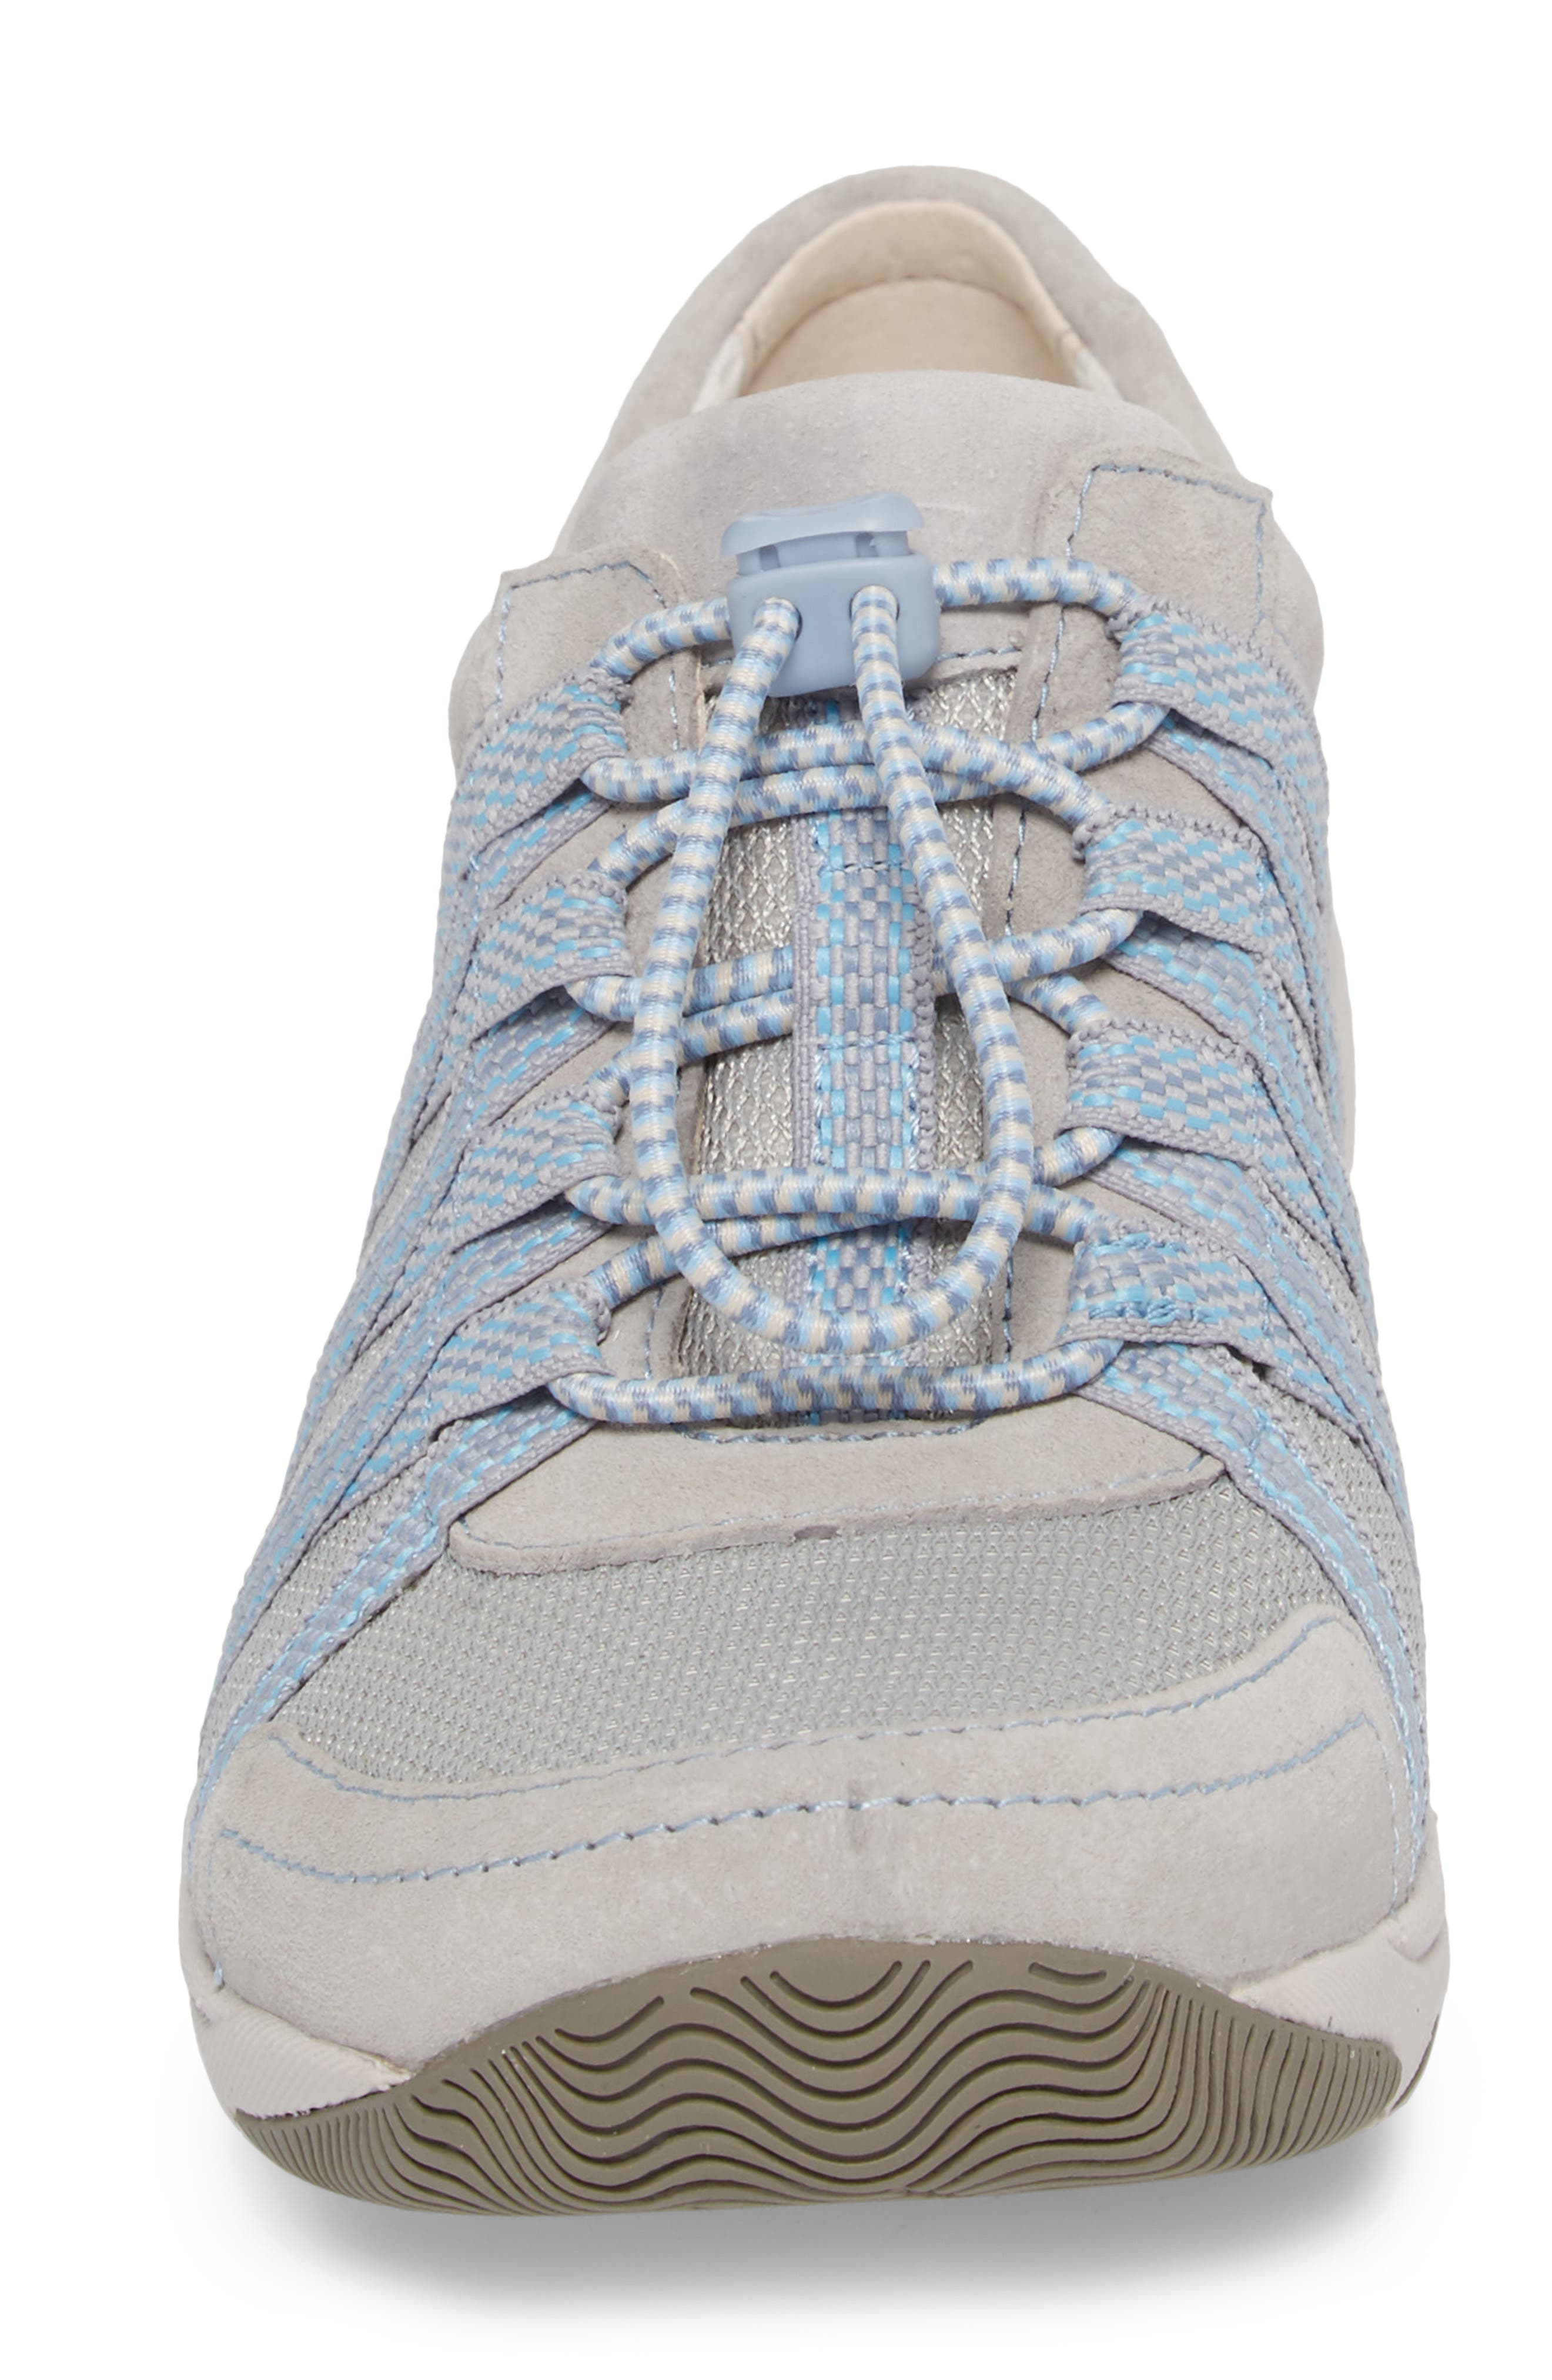 Halifax Collection Honor Sneaker,                             Alternate thumbnail 26, color,